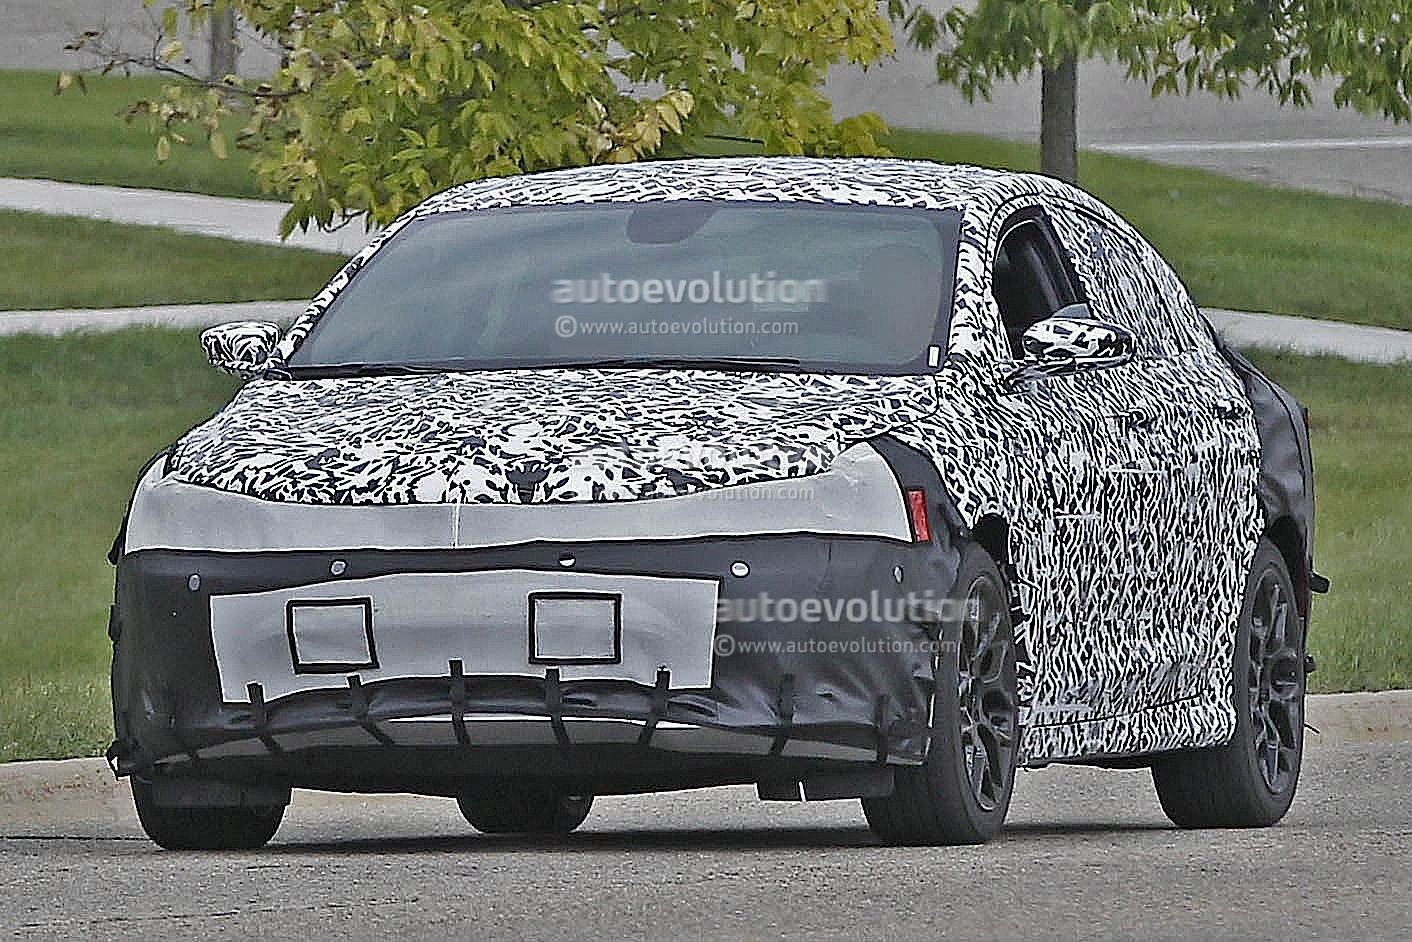 Spyshots: 2015 Chrysler 200 / Lancia Flavia in the Sheetmetal